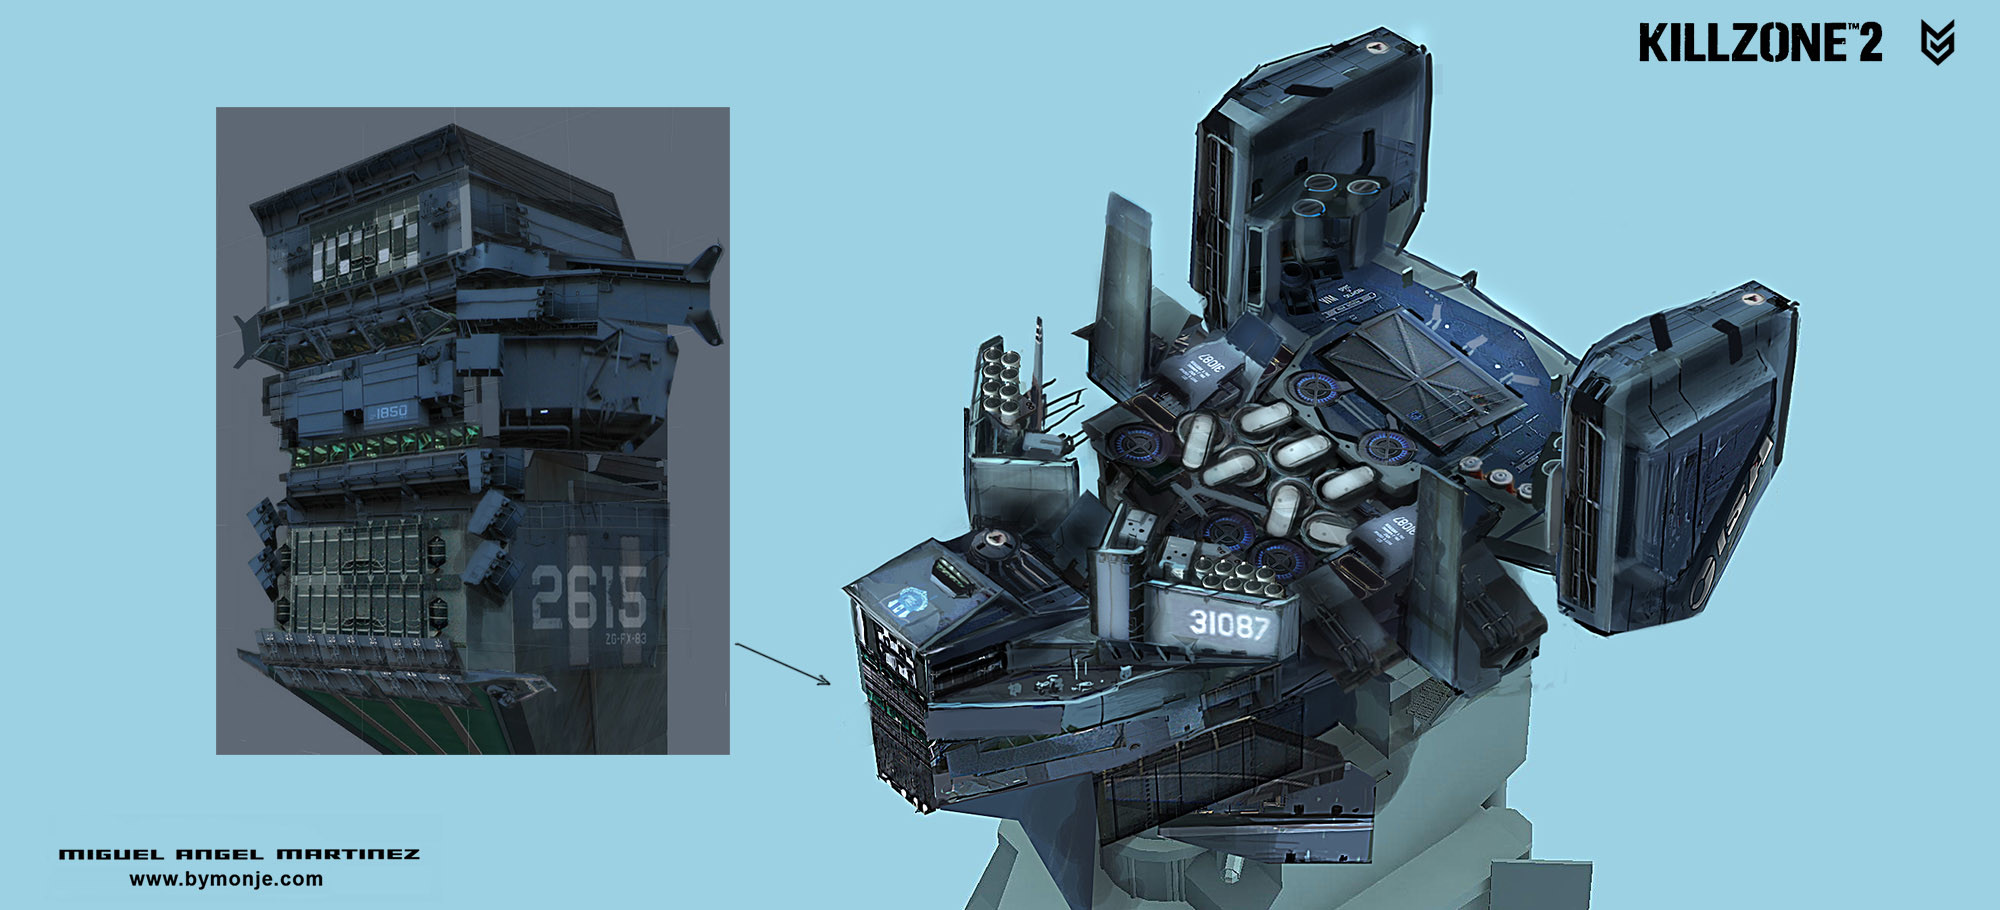 killzone-2-ISA-Cruiser-Bridge-Concept-Art-Detail-bymonje